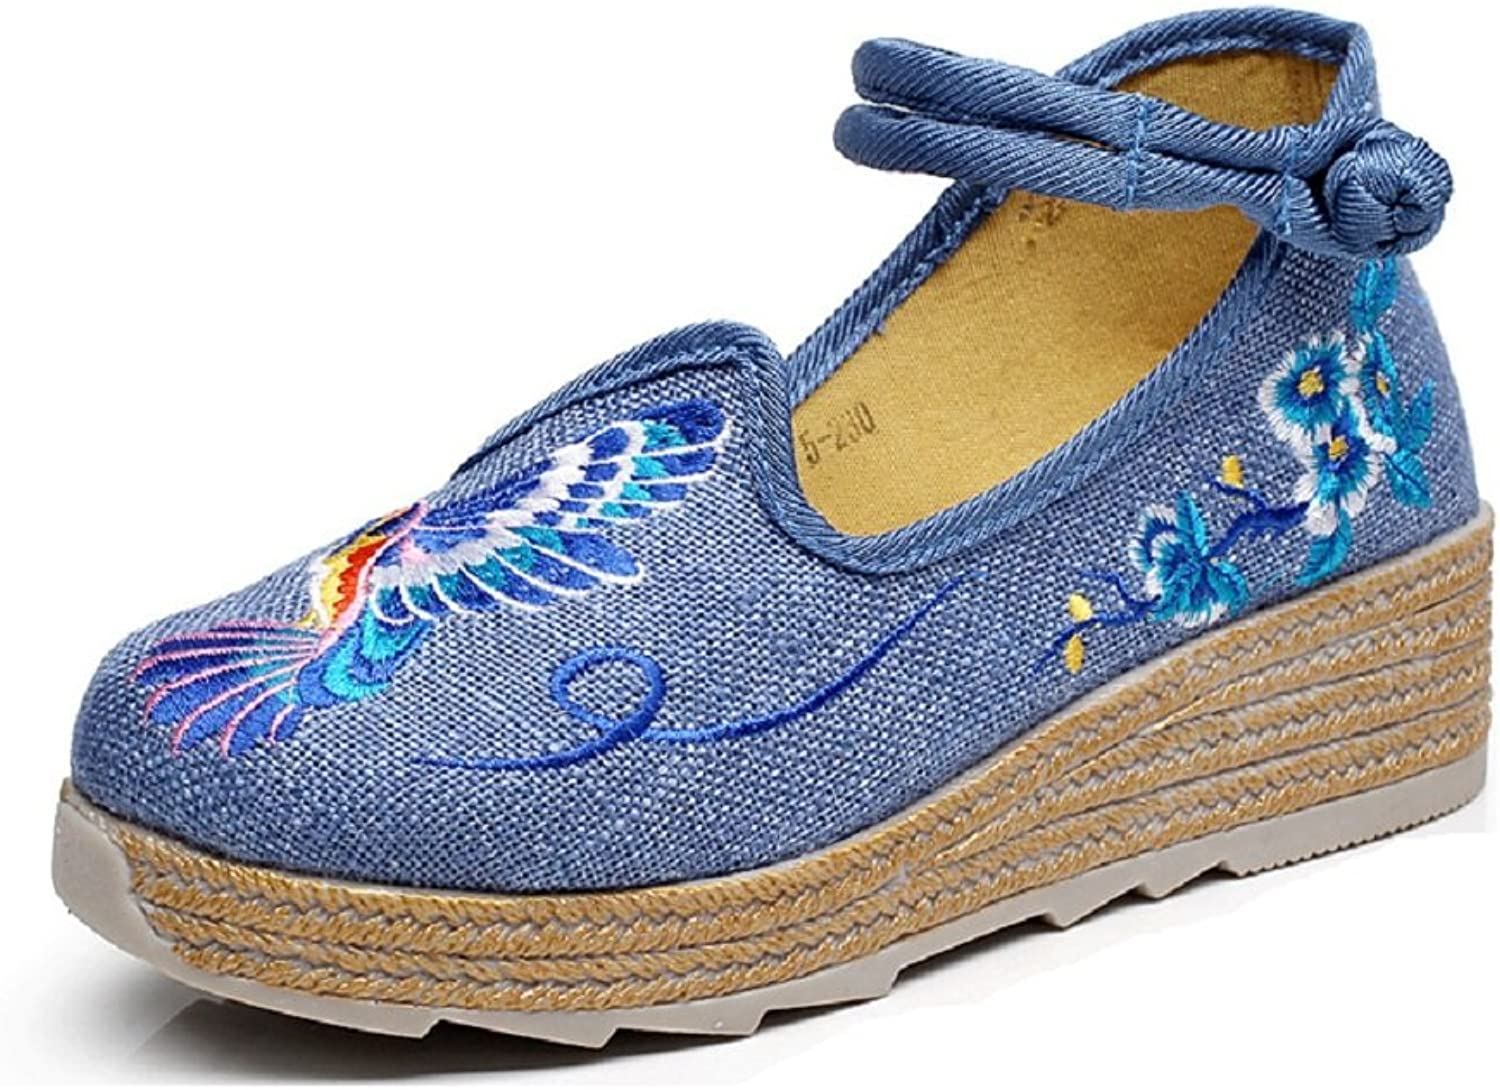 Tianrui Crown Women's bluee Bird Embroidered Wedge Platform Mary-Jane shoes Sandals